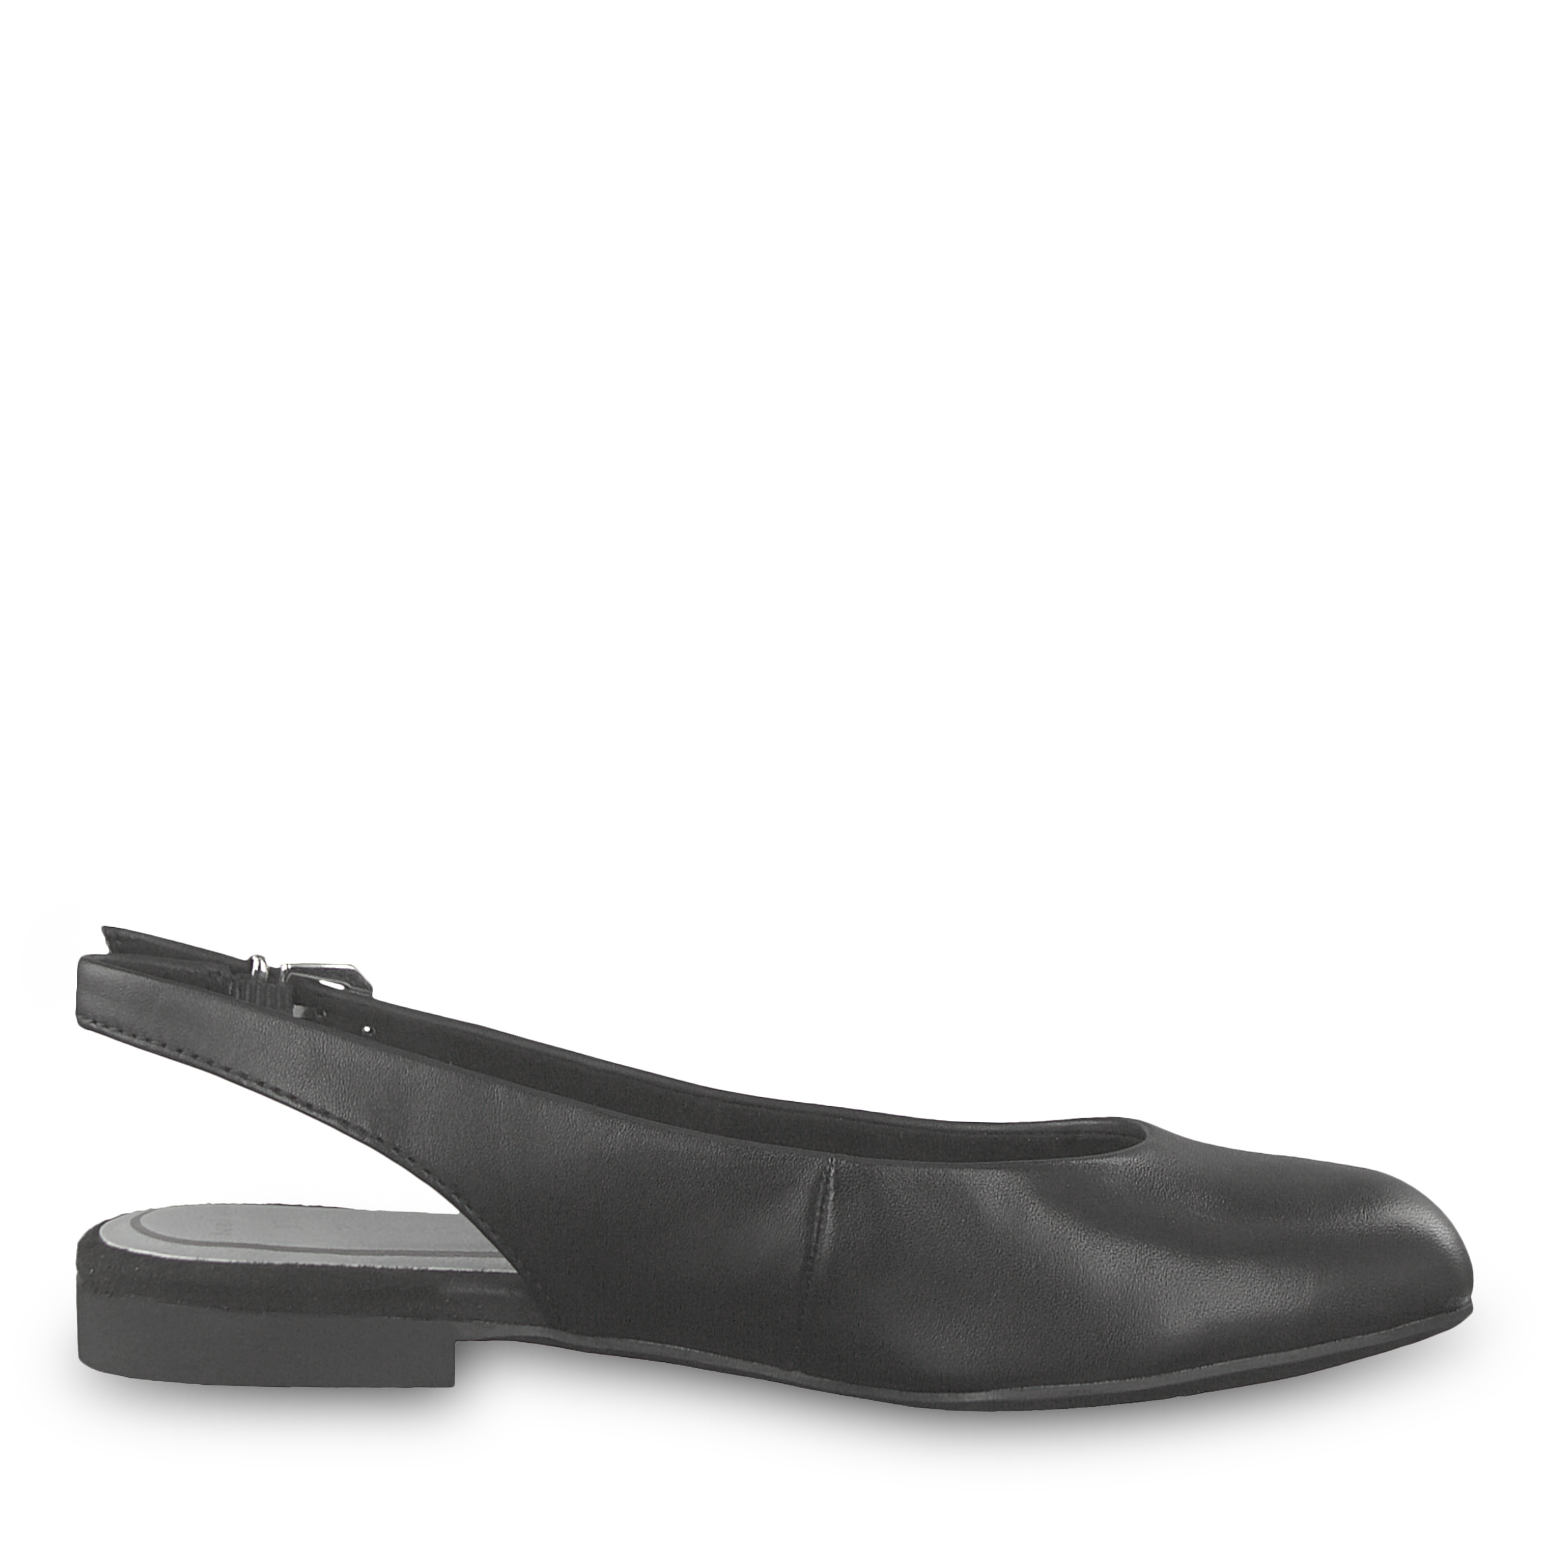 Leather Pumps - black, BLACK, hi-res